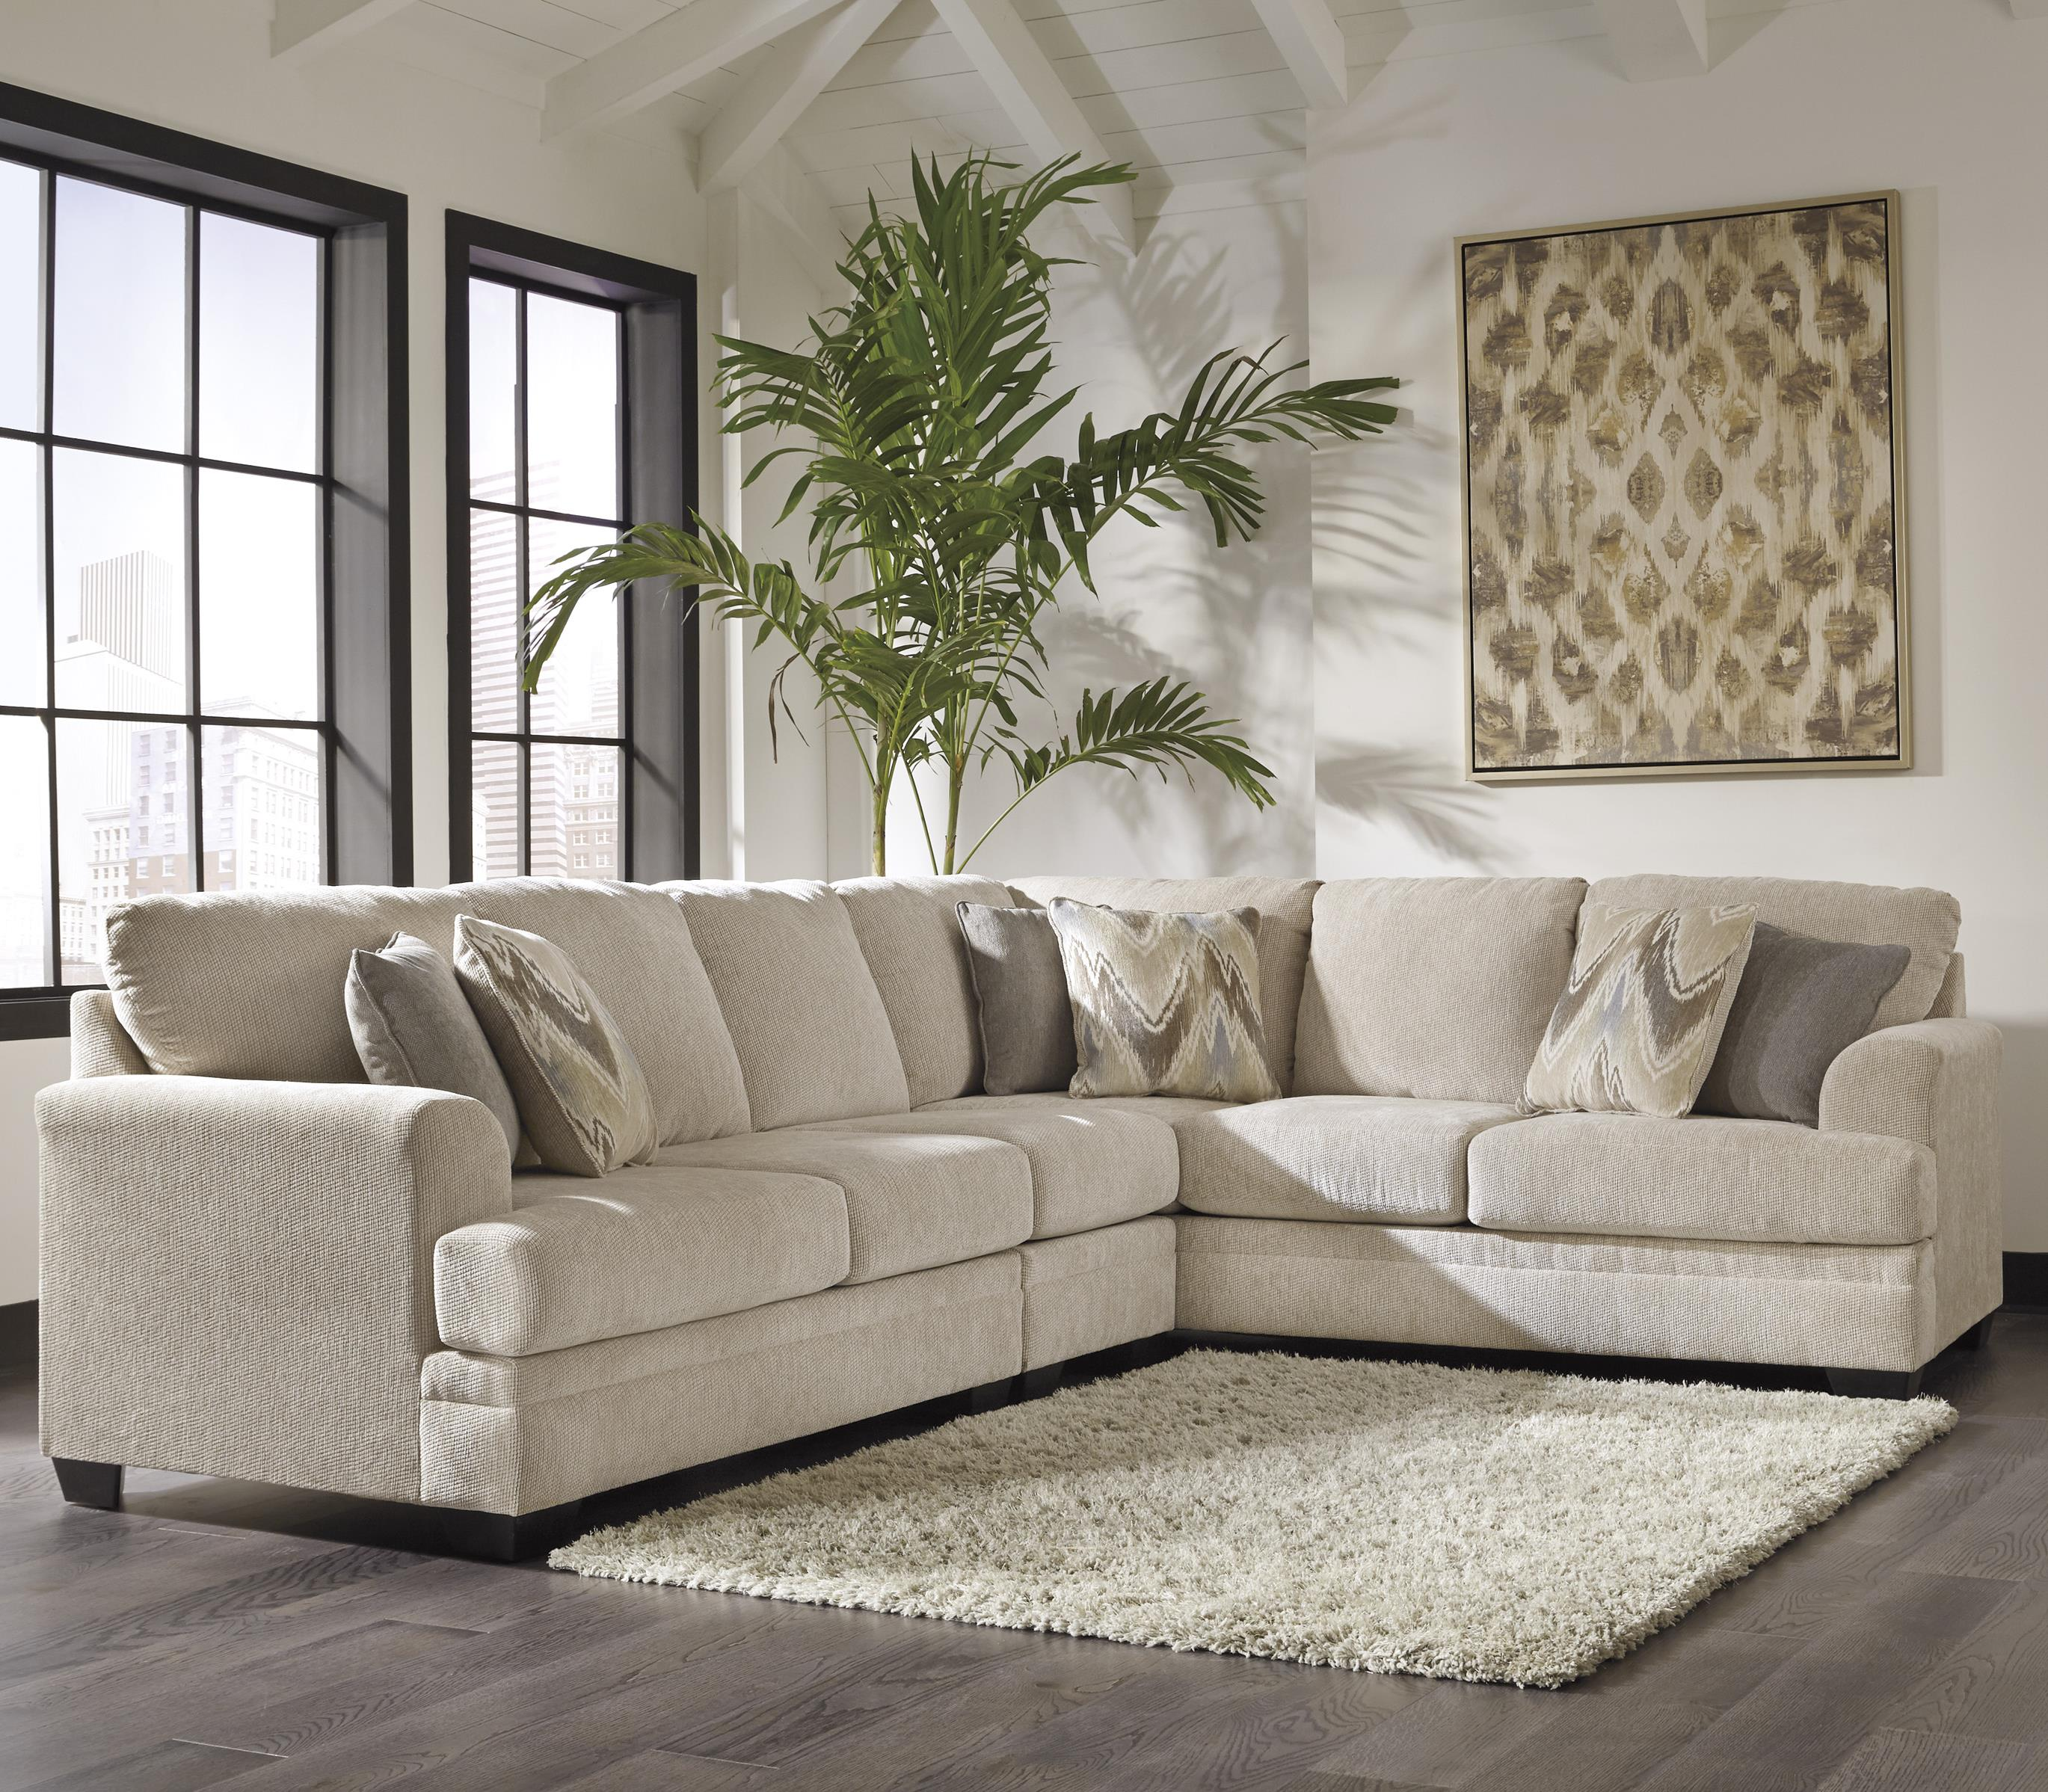 Benchcraft Ameer 3-Piece Sectional - Item Number: 8180655+46+67